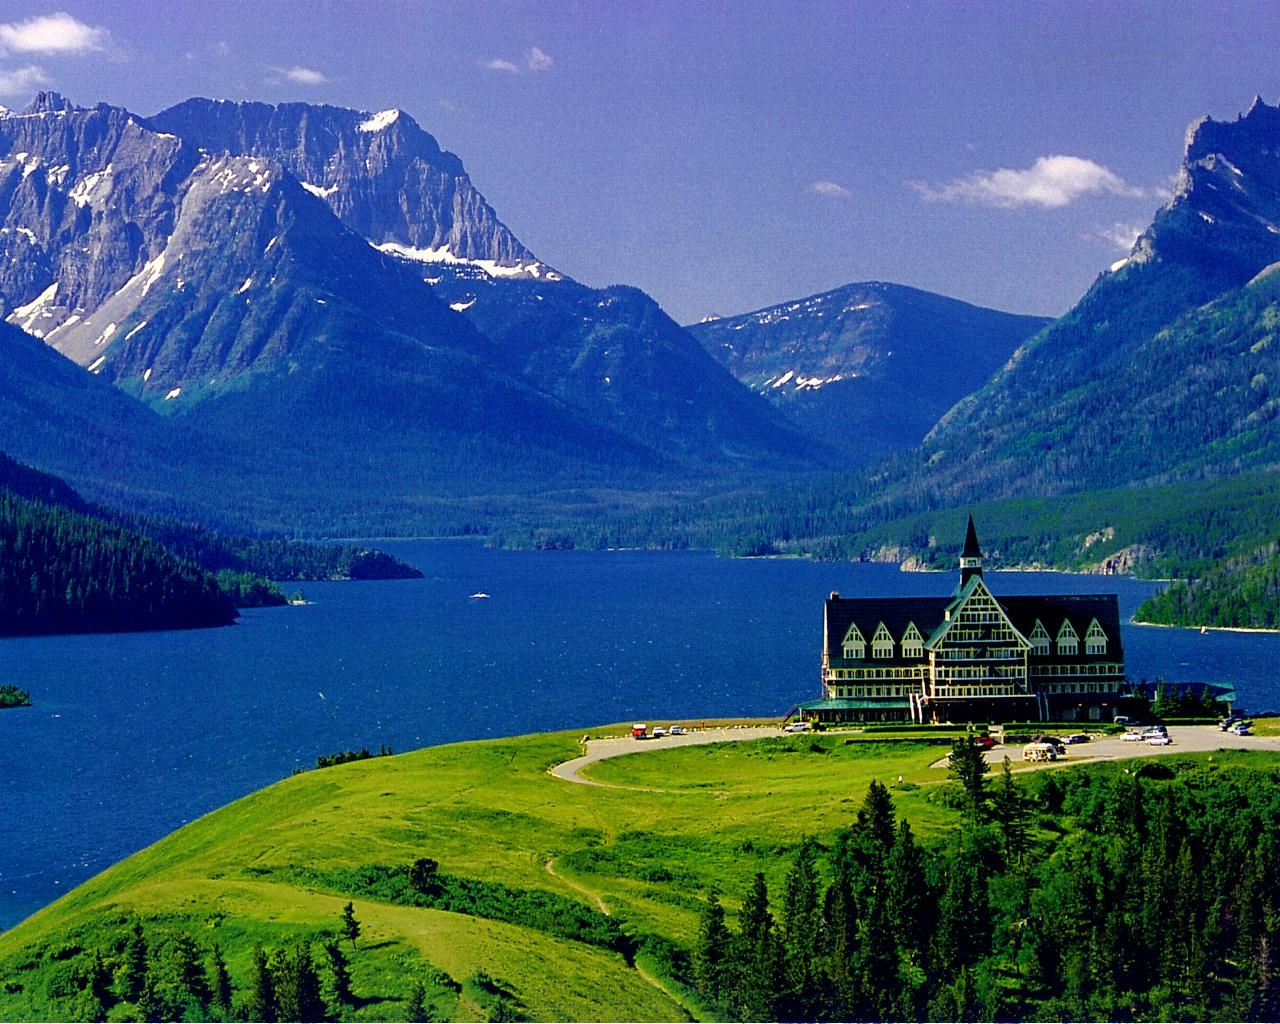 Prince Of Wales Hotel Waterton Lakes National Park Alberta Blues Greens Whites Inspiration Comes In All Forms